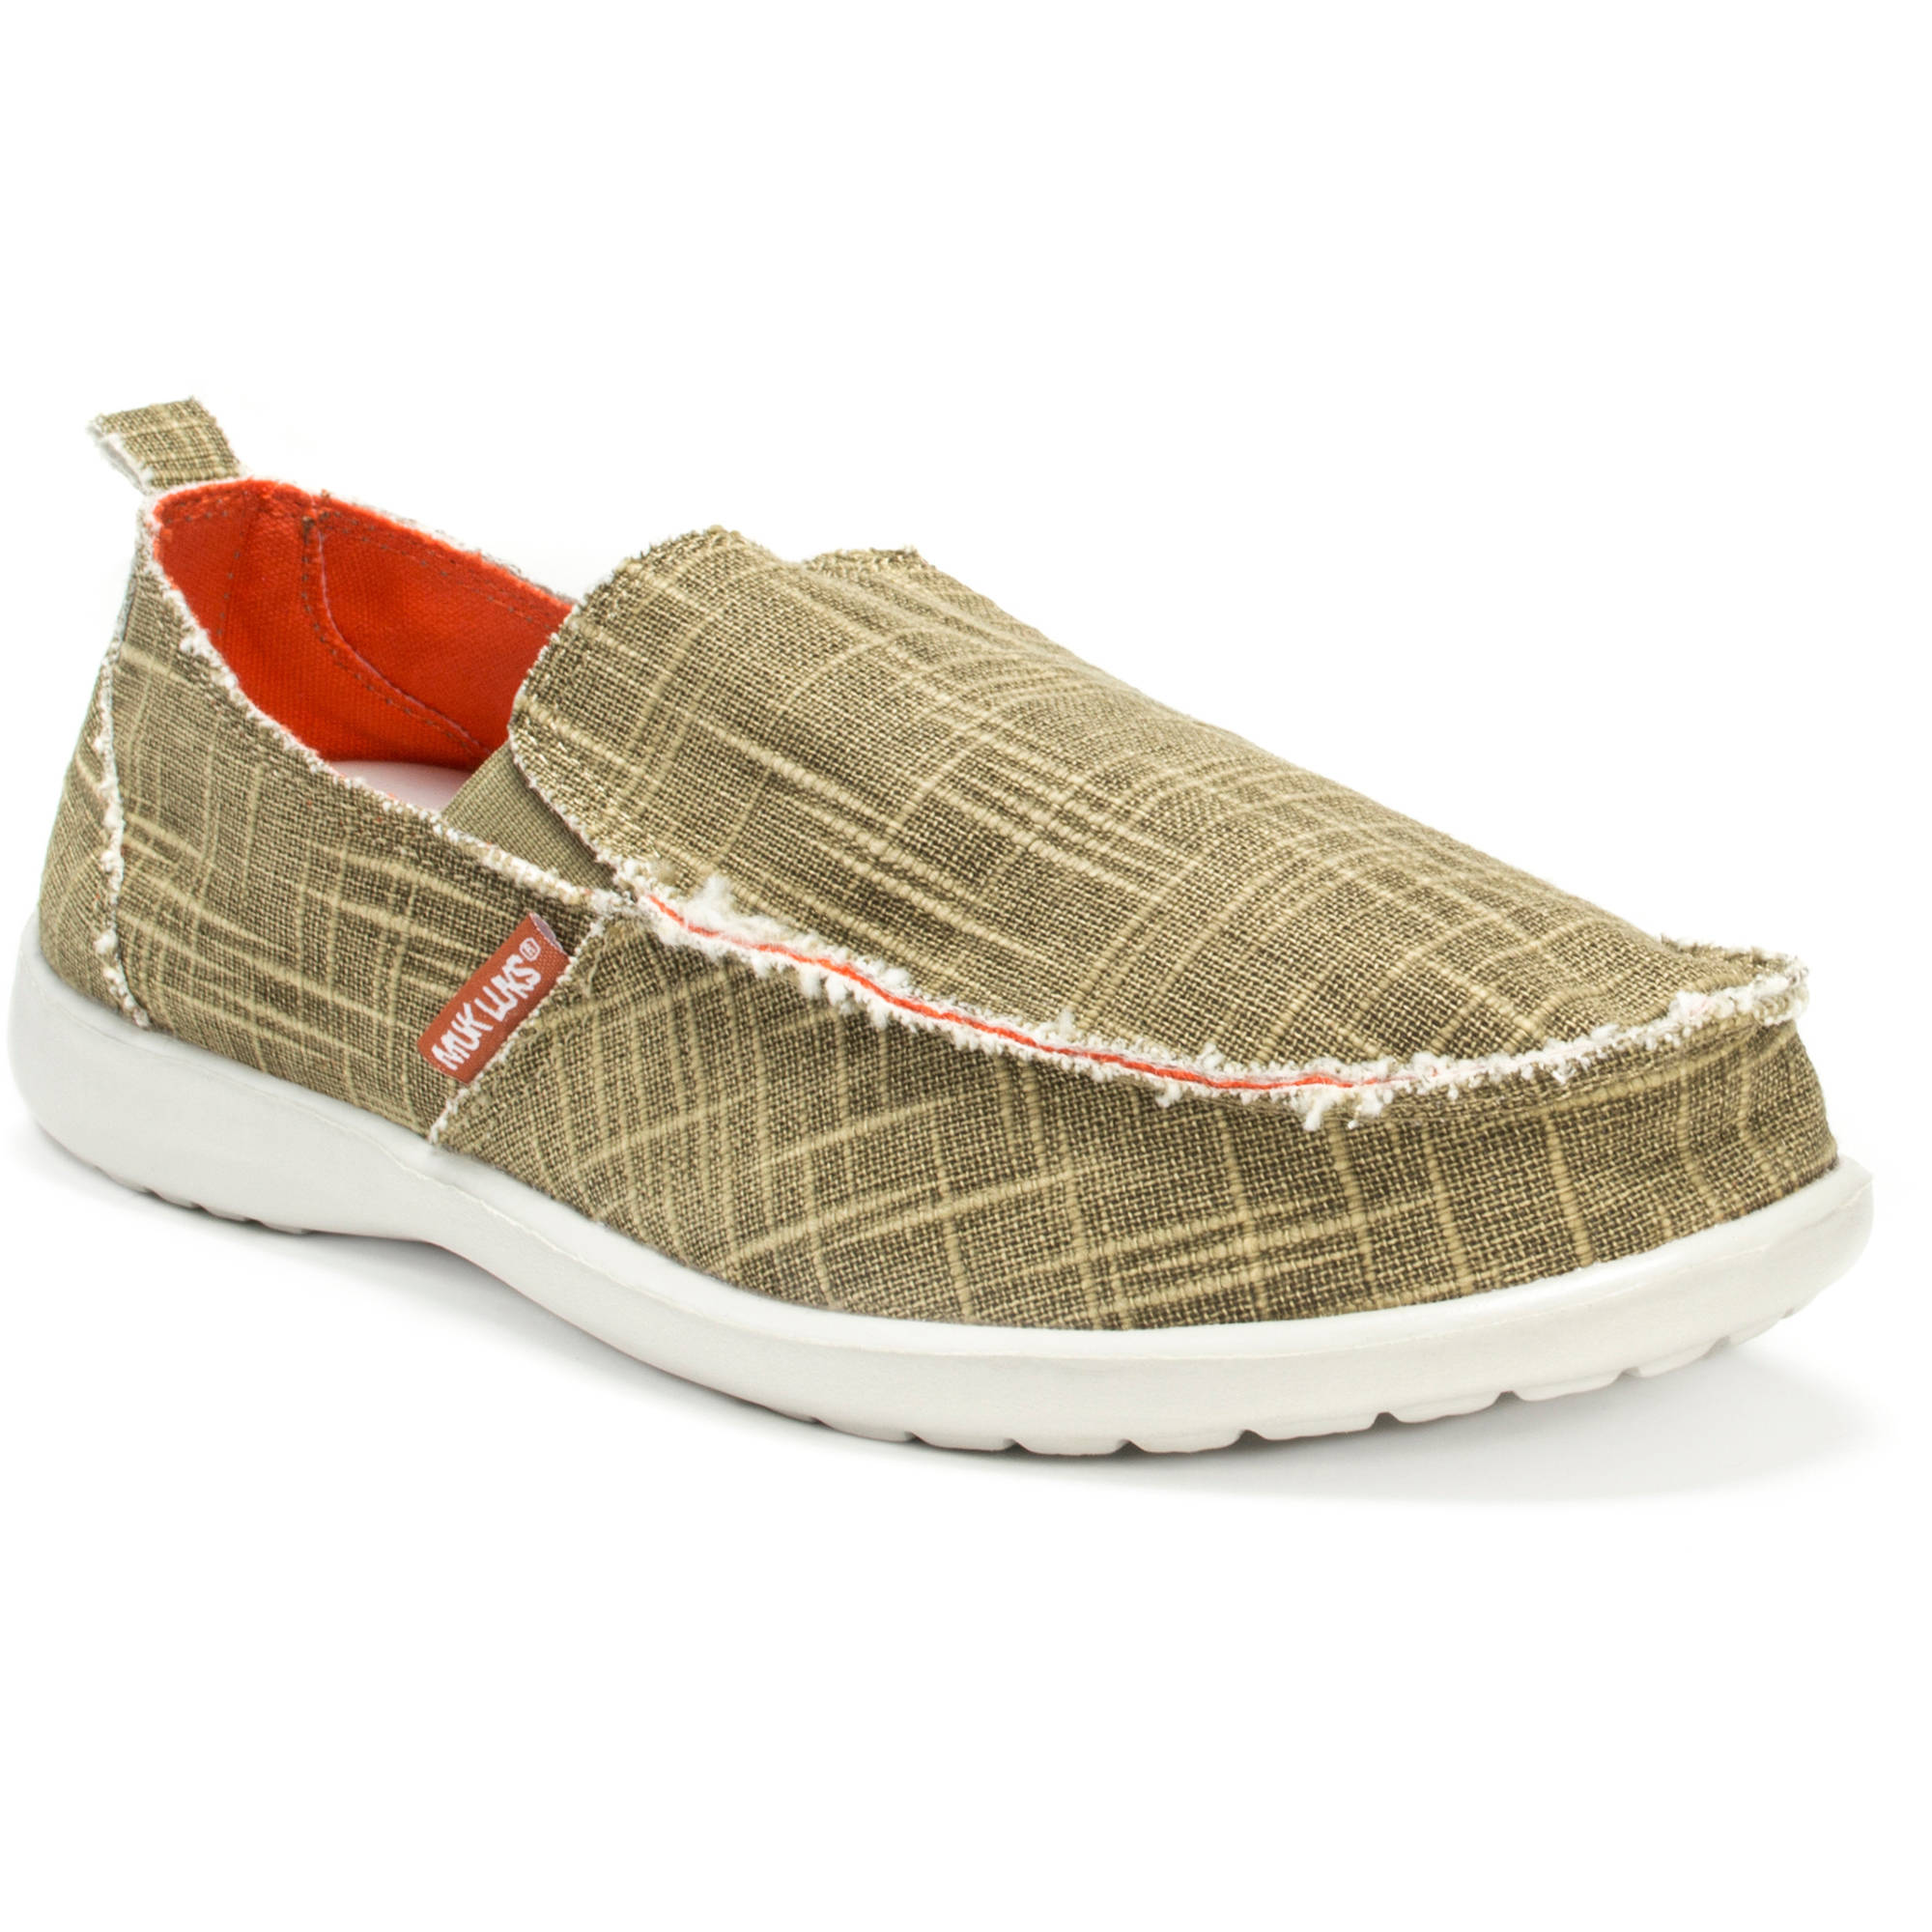 MUK LUKS Men's Andy Shoes